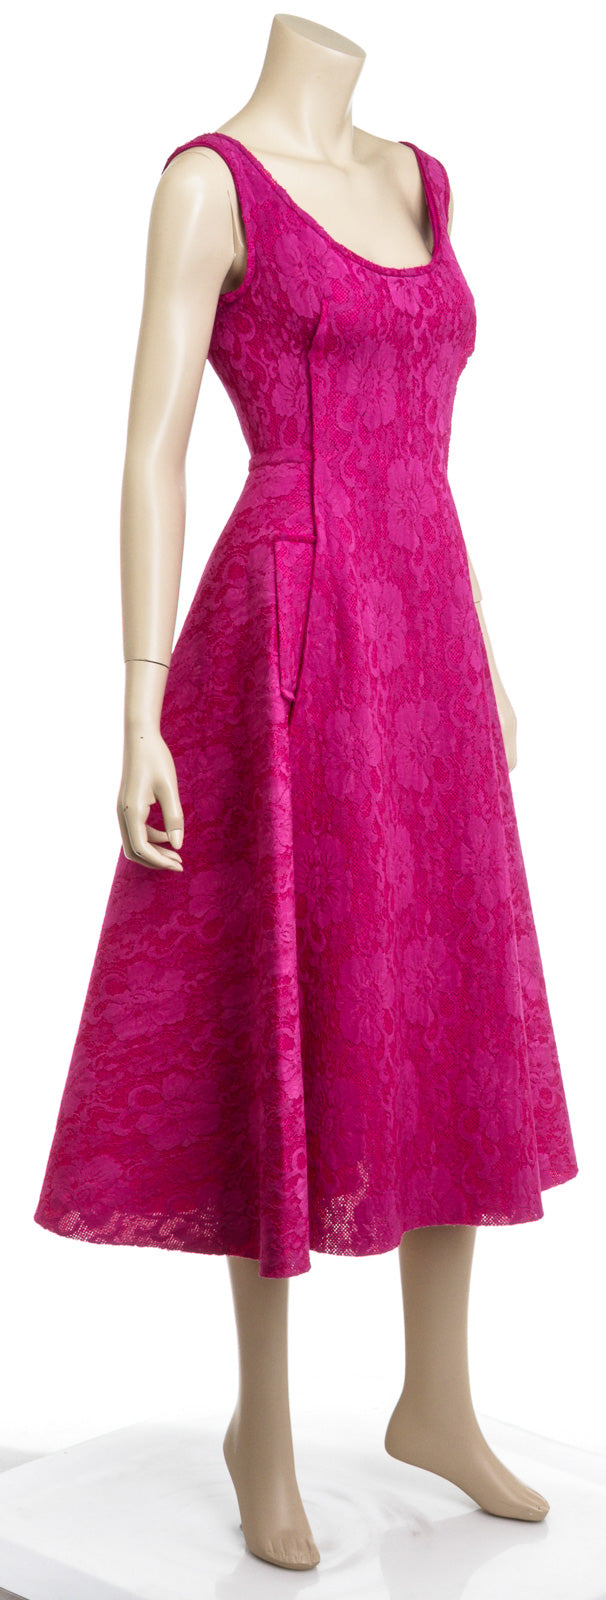 Lanvin Fuschia Pink Lace Flare Ballet Dress Size 36